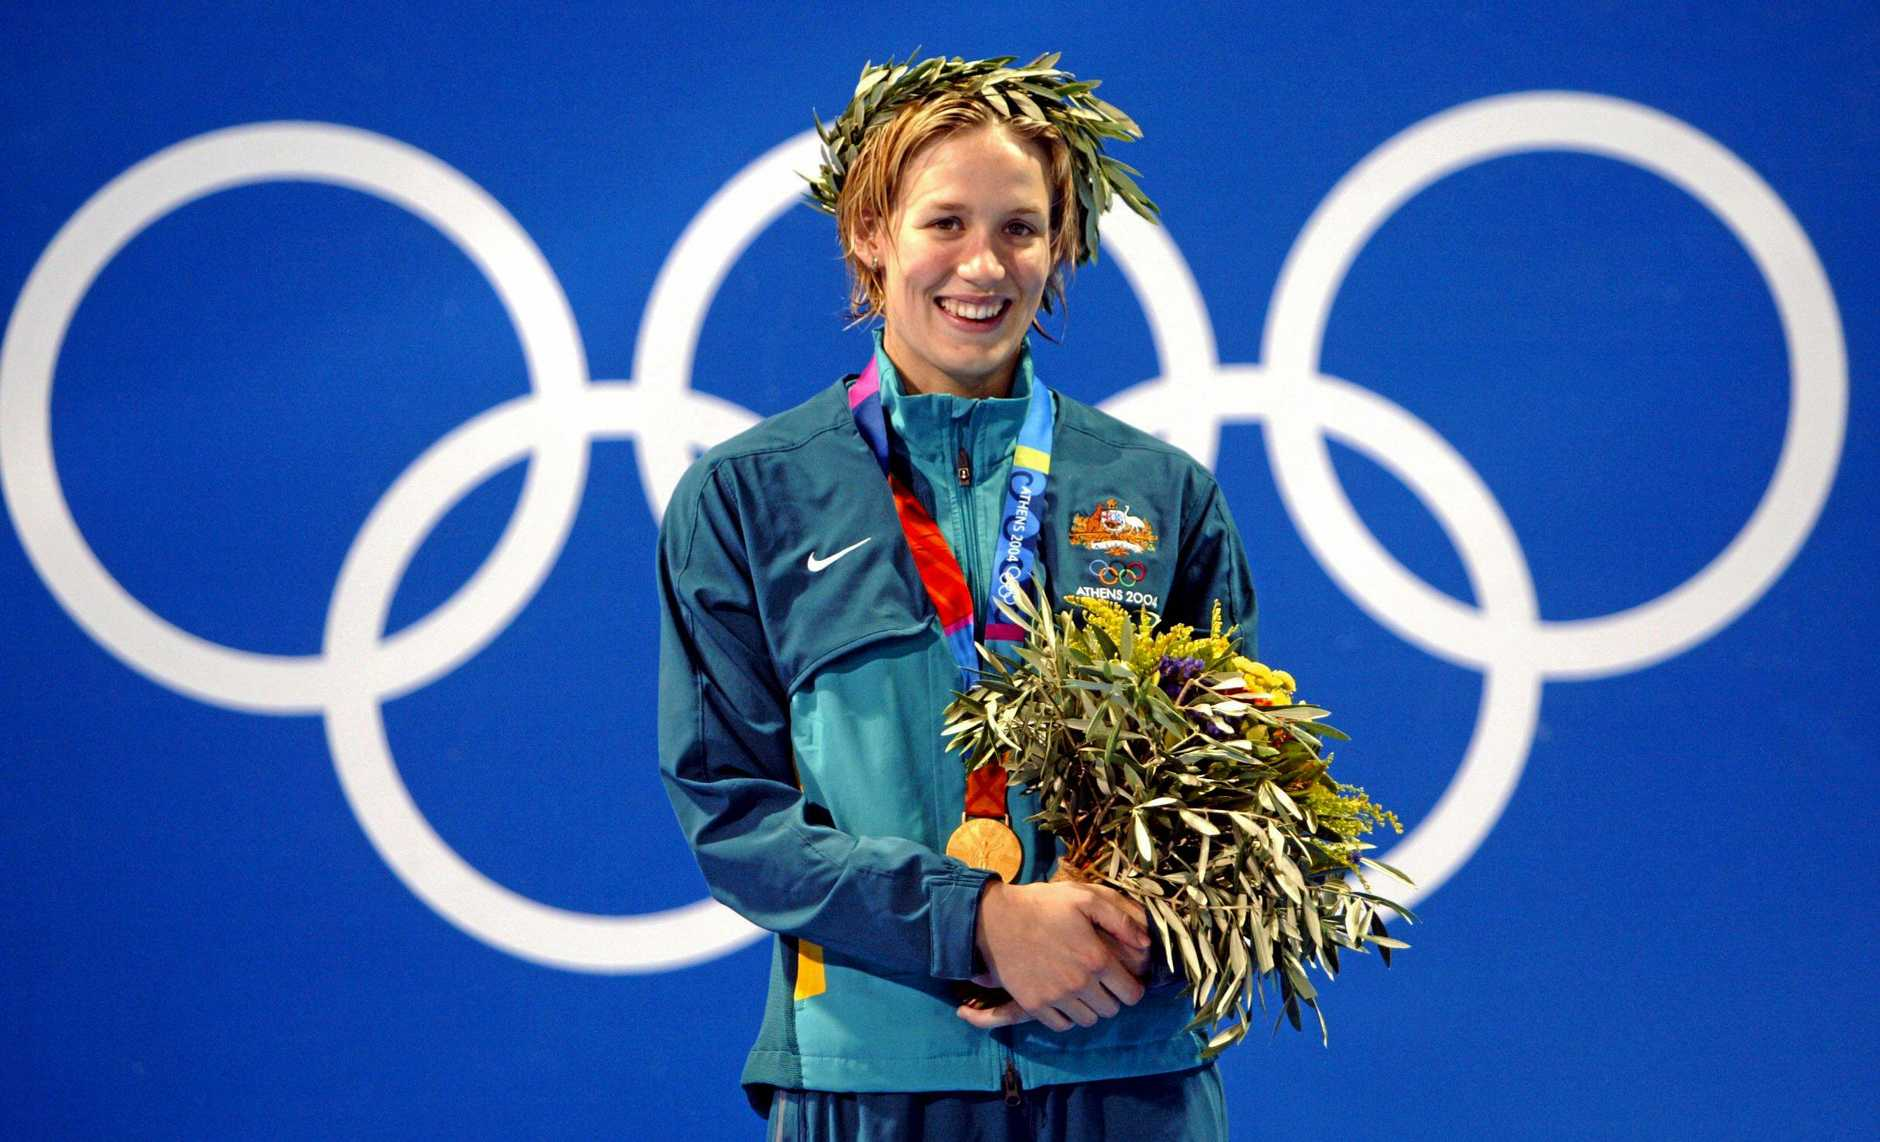 Jodie Henry with her gold medal following the 100m freestyle at the Athens 2004 Olympic Games.